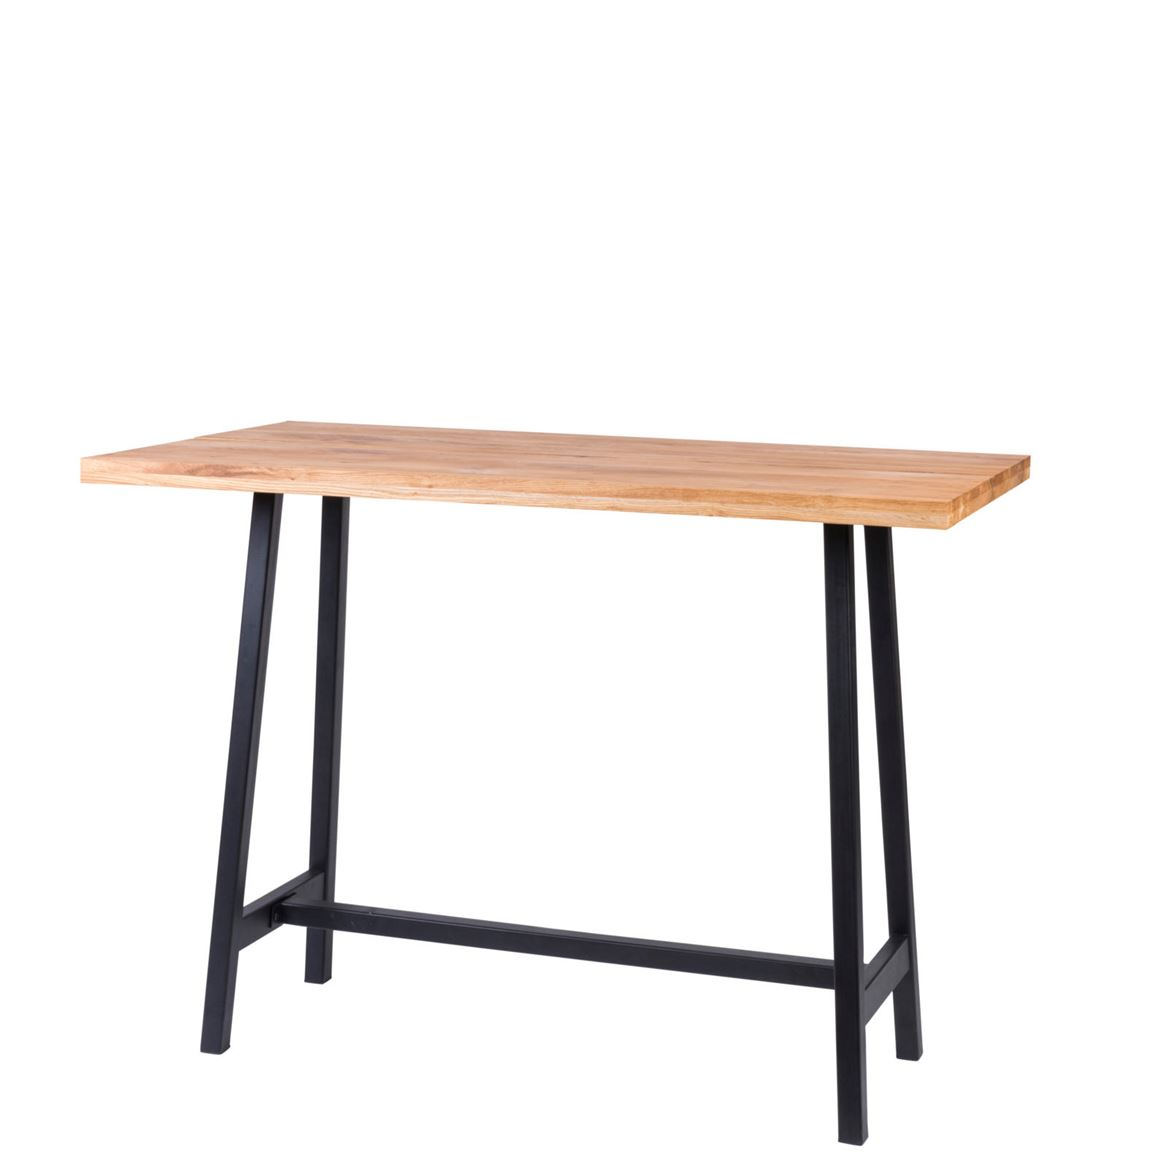 OAK SPLIT Table de bar naturel H 102 x Larg. 70 x Long. 140 cm_oak-split-table-de-bar-naturel-h-102-x-larg--70-x-long--140-cm